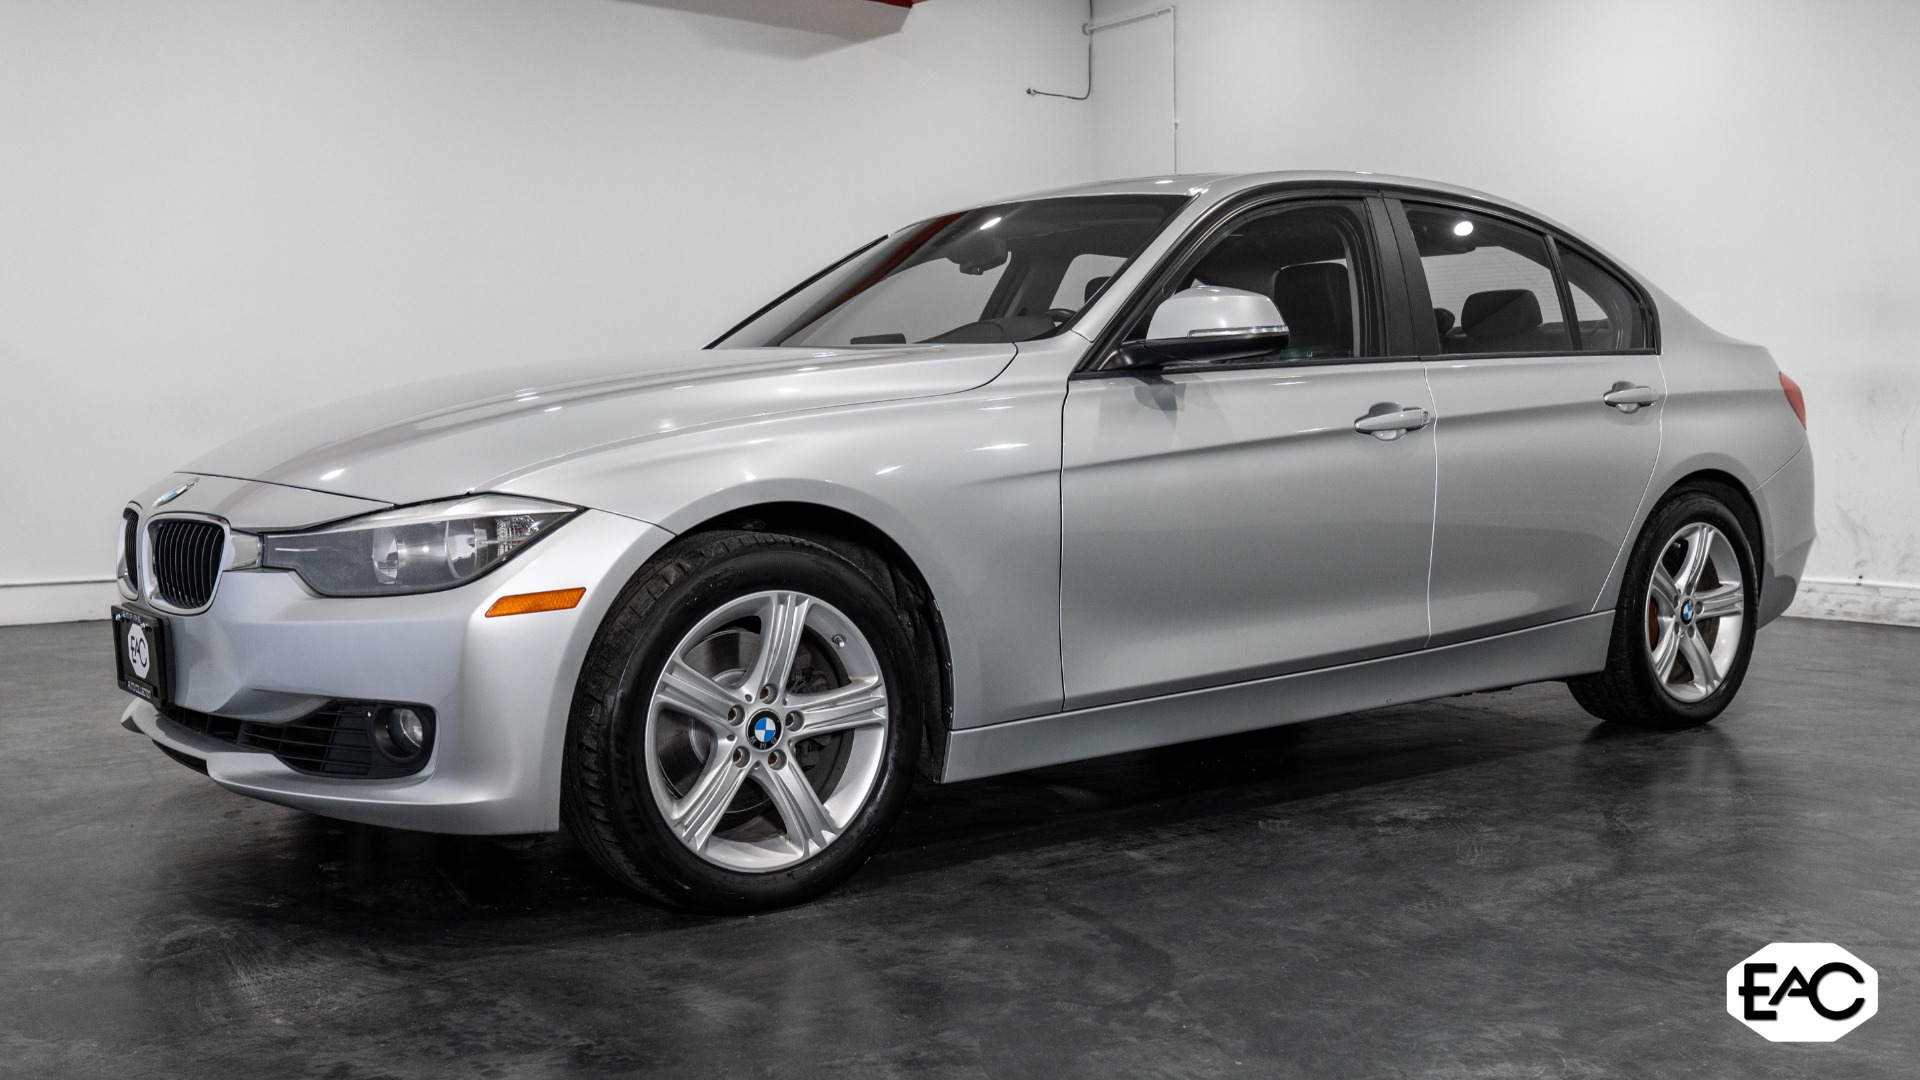 Used 2013 BMW 3 Series 328i xDrive for sale Sold at Empire Auto Collection in Warren MI 48091 1